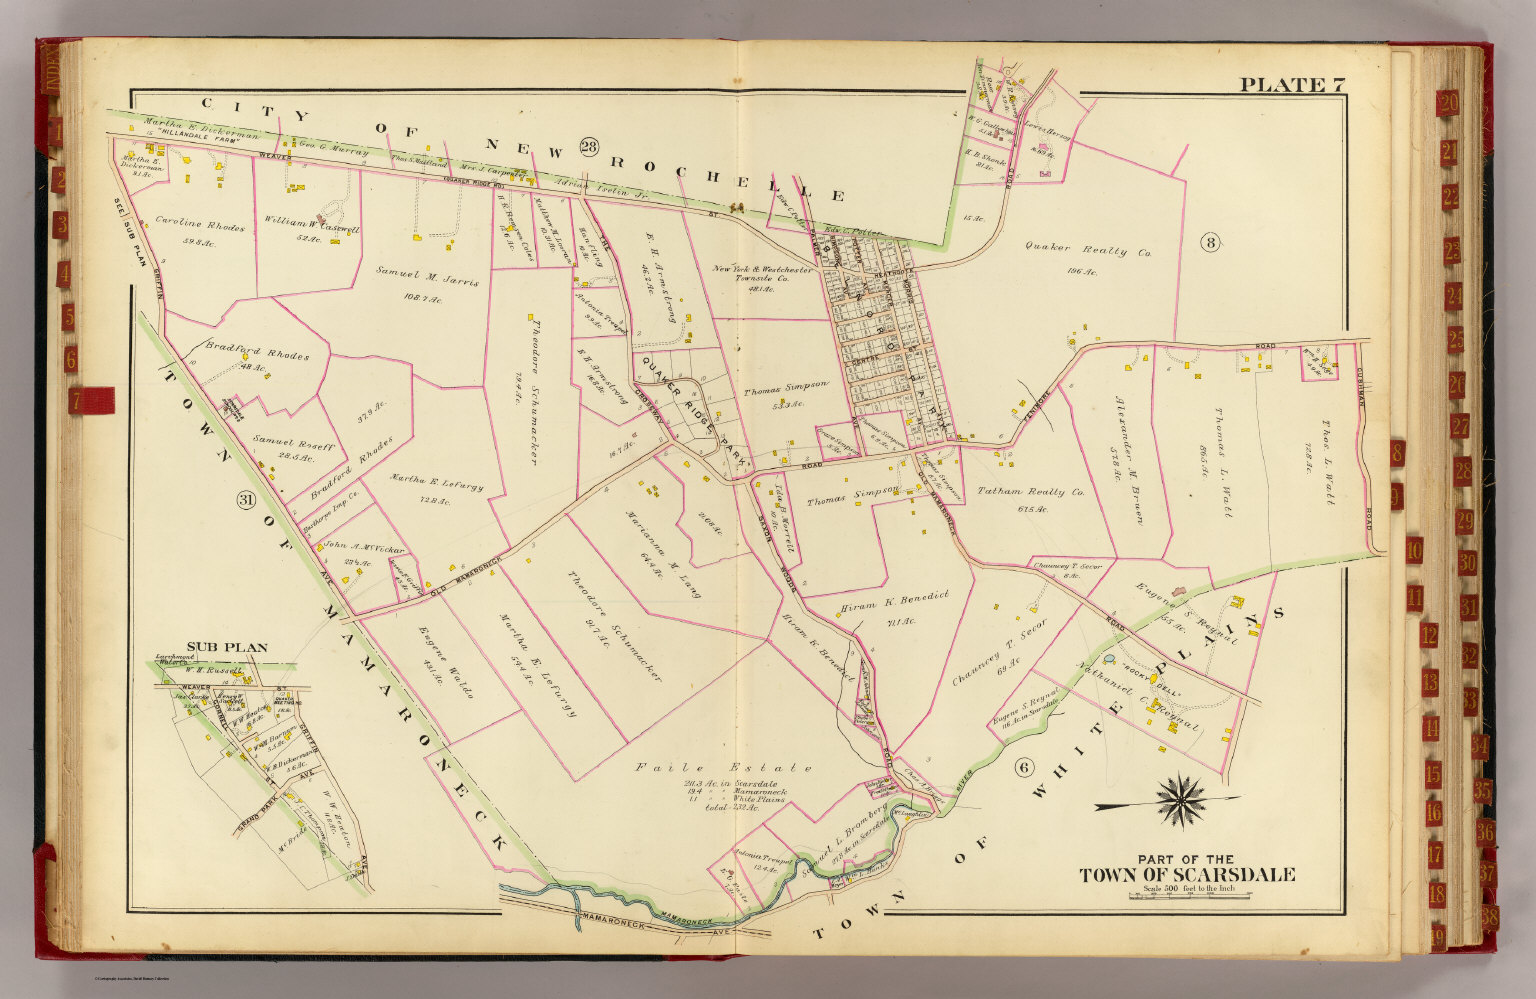 Part of the town of Scarsdale, 1910. See the Rumsey site for other sections.